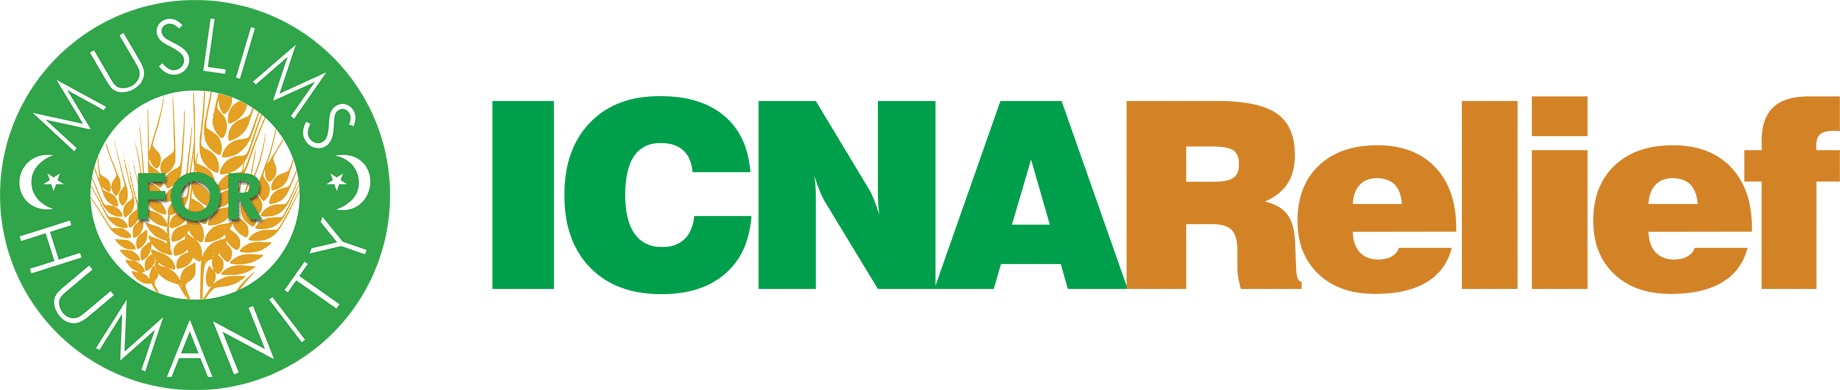 ICNA_Logo3_New_Height_390.png